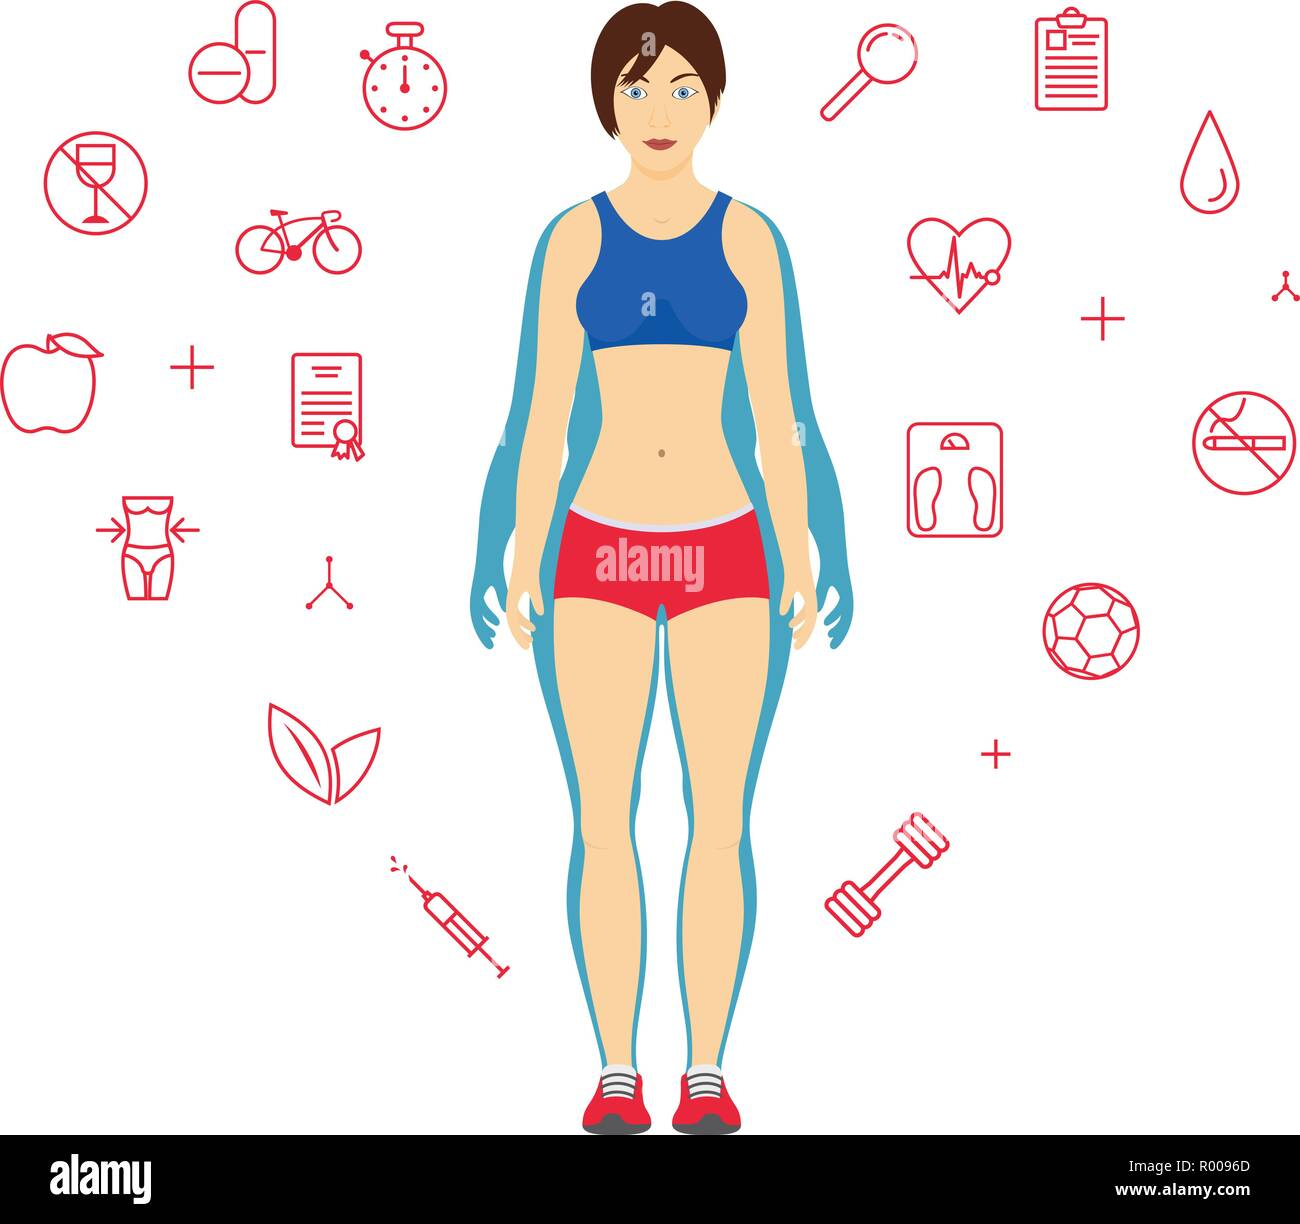 woman body transformation concept girl before and after diet or